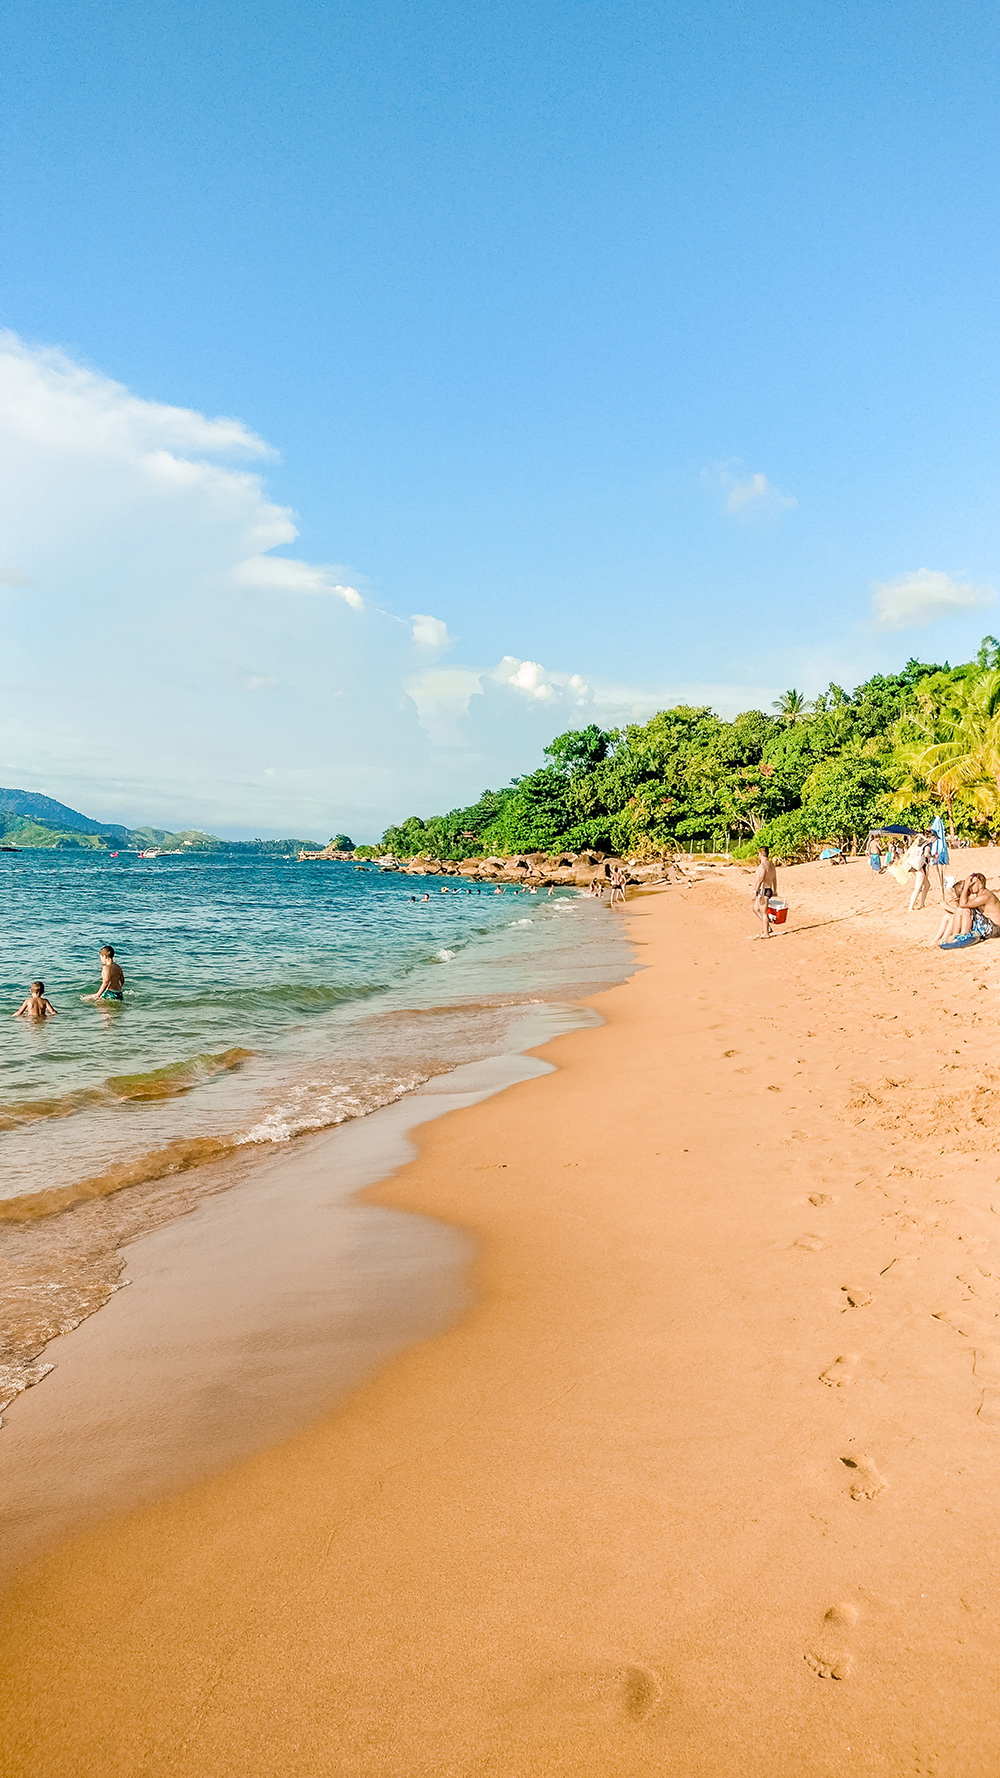 Beachtime at Praia Grande - How to spend 3 days in Ilhabela, Brazil? | Aliz's Wonderland